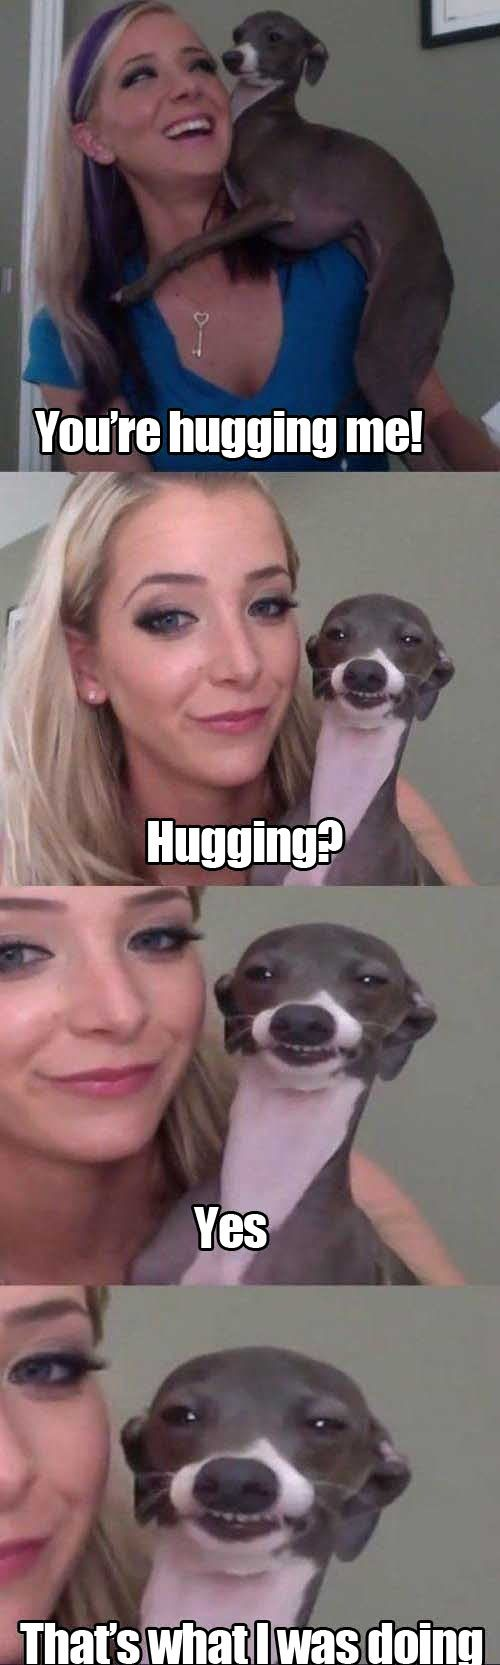 This looks so much like the Italian Greyhound we had, except he didn't look scary, and he really did hug us!!!: Dogs, Jennamarbles, Funny Pictures, Jenna Marbles, Funny Stuff, Humor, Funnies, Animal